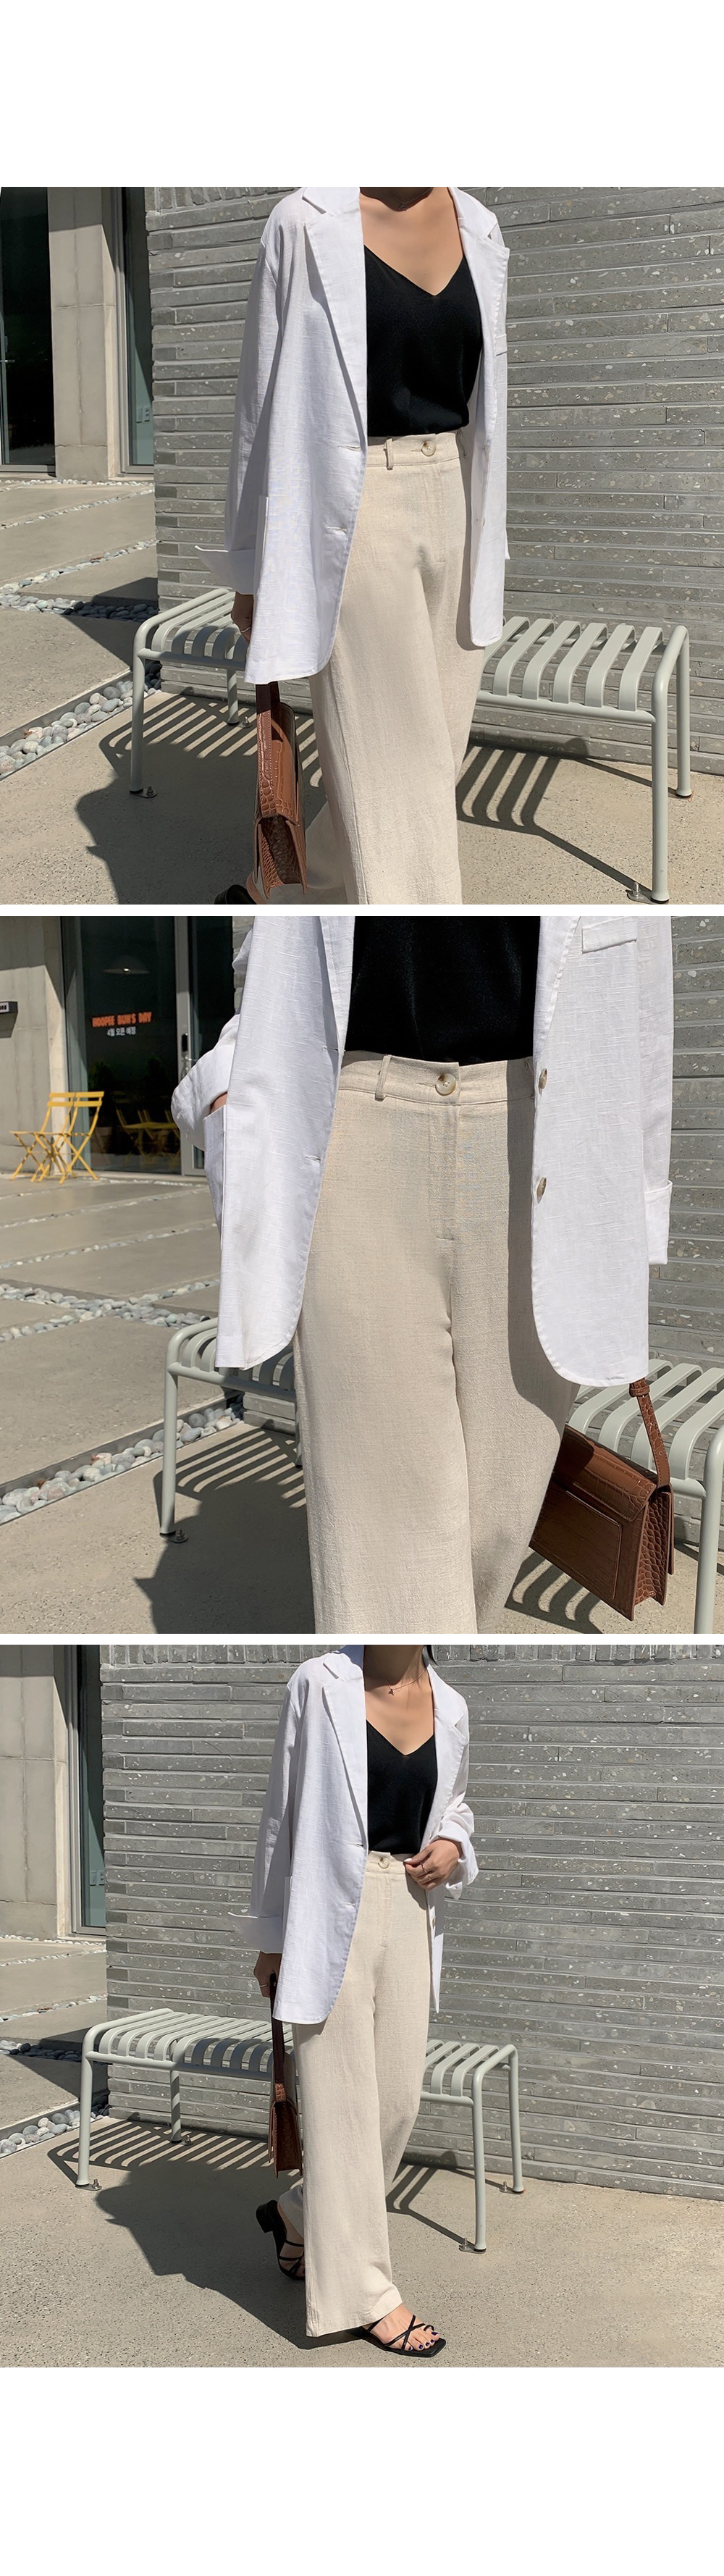 Relaxed fit Daily Linen Blazer-holiholic.com